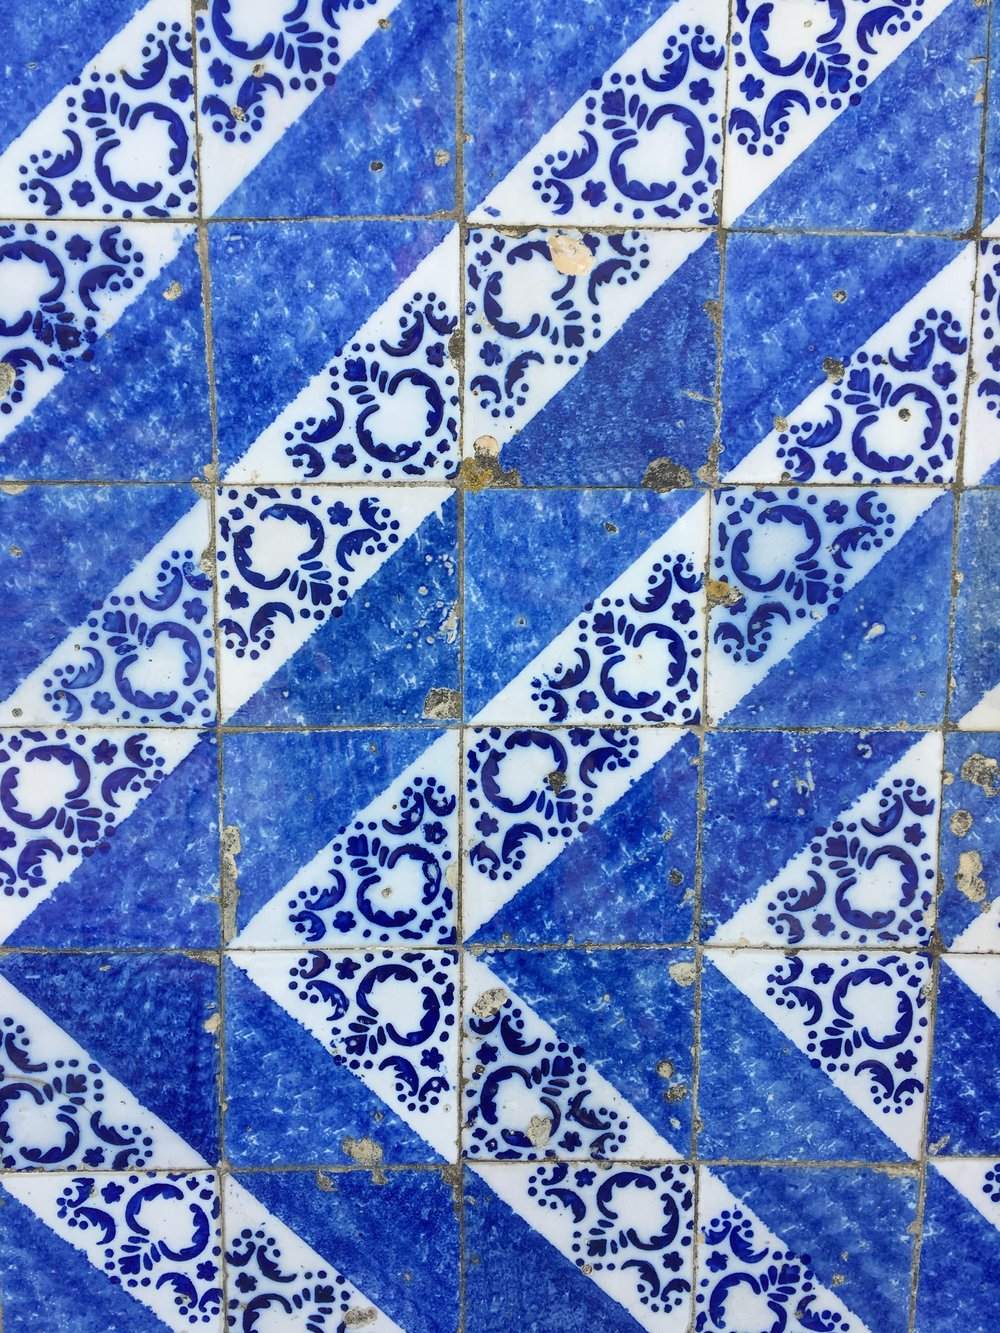 My favourite part of Portuguese buildings were the beautiful tiles